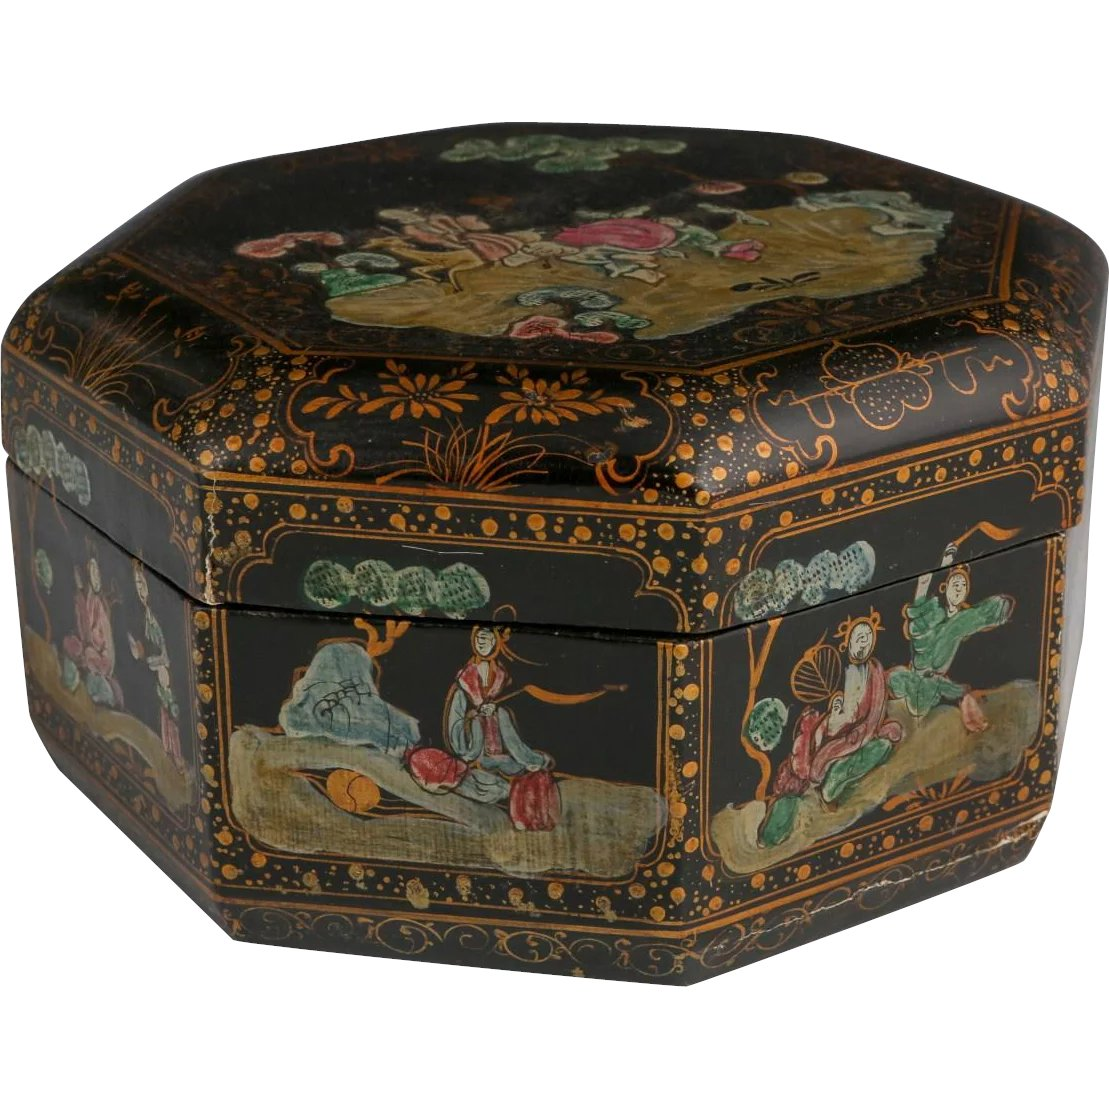 Antiques Collectibles: Antique Chinese Lacquered Octagonal Wedding Box, C. 1900